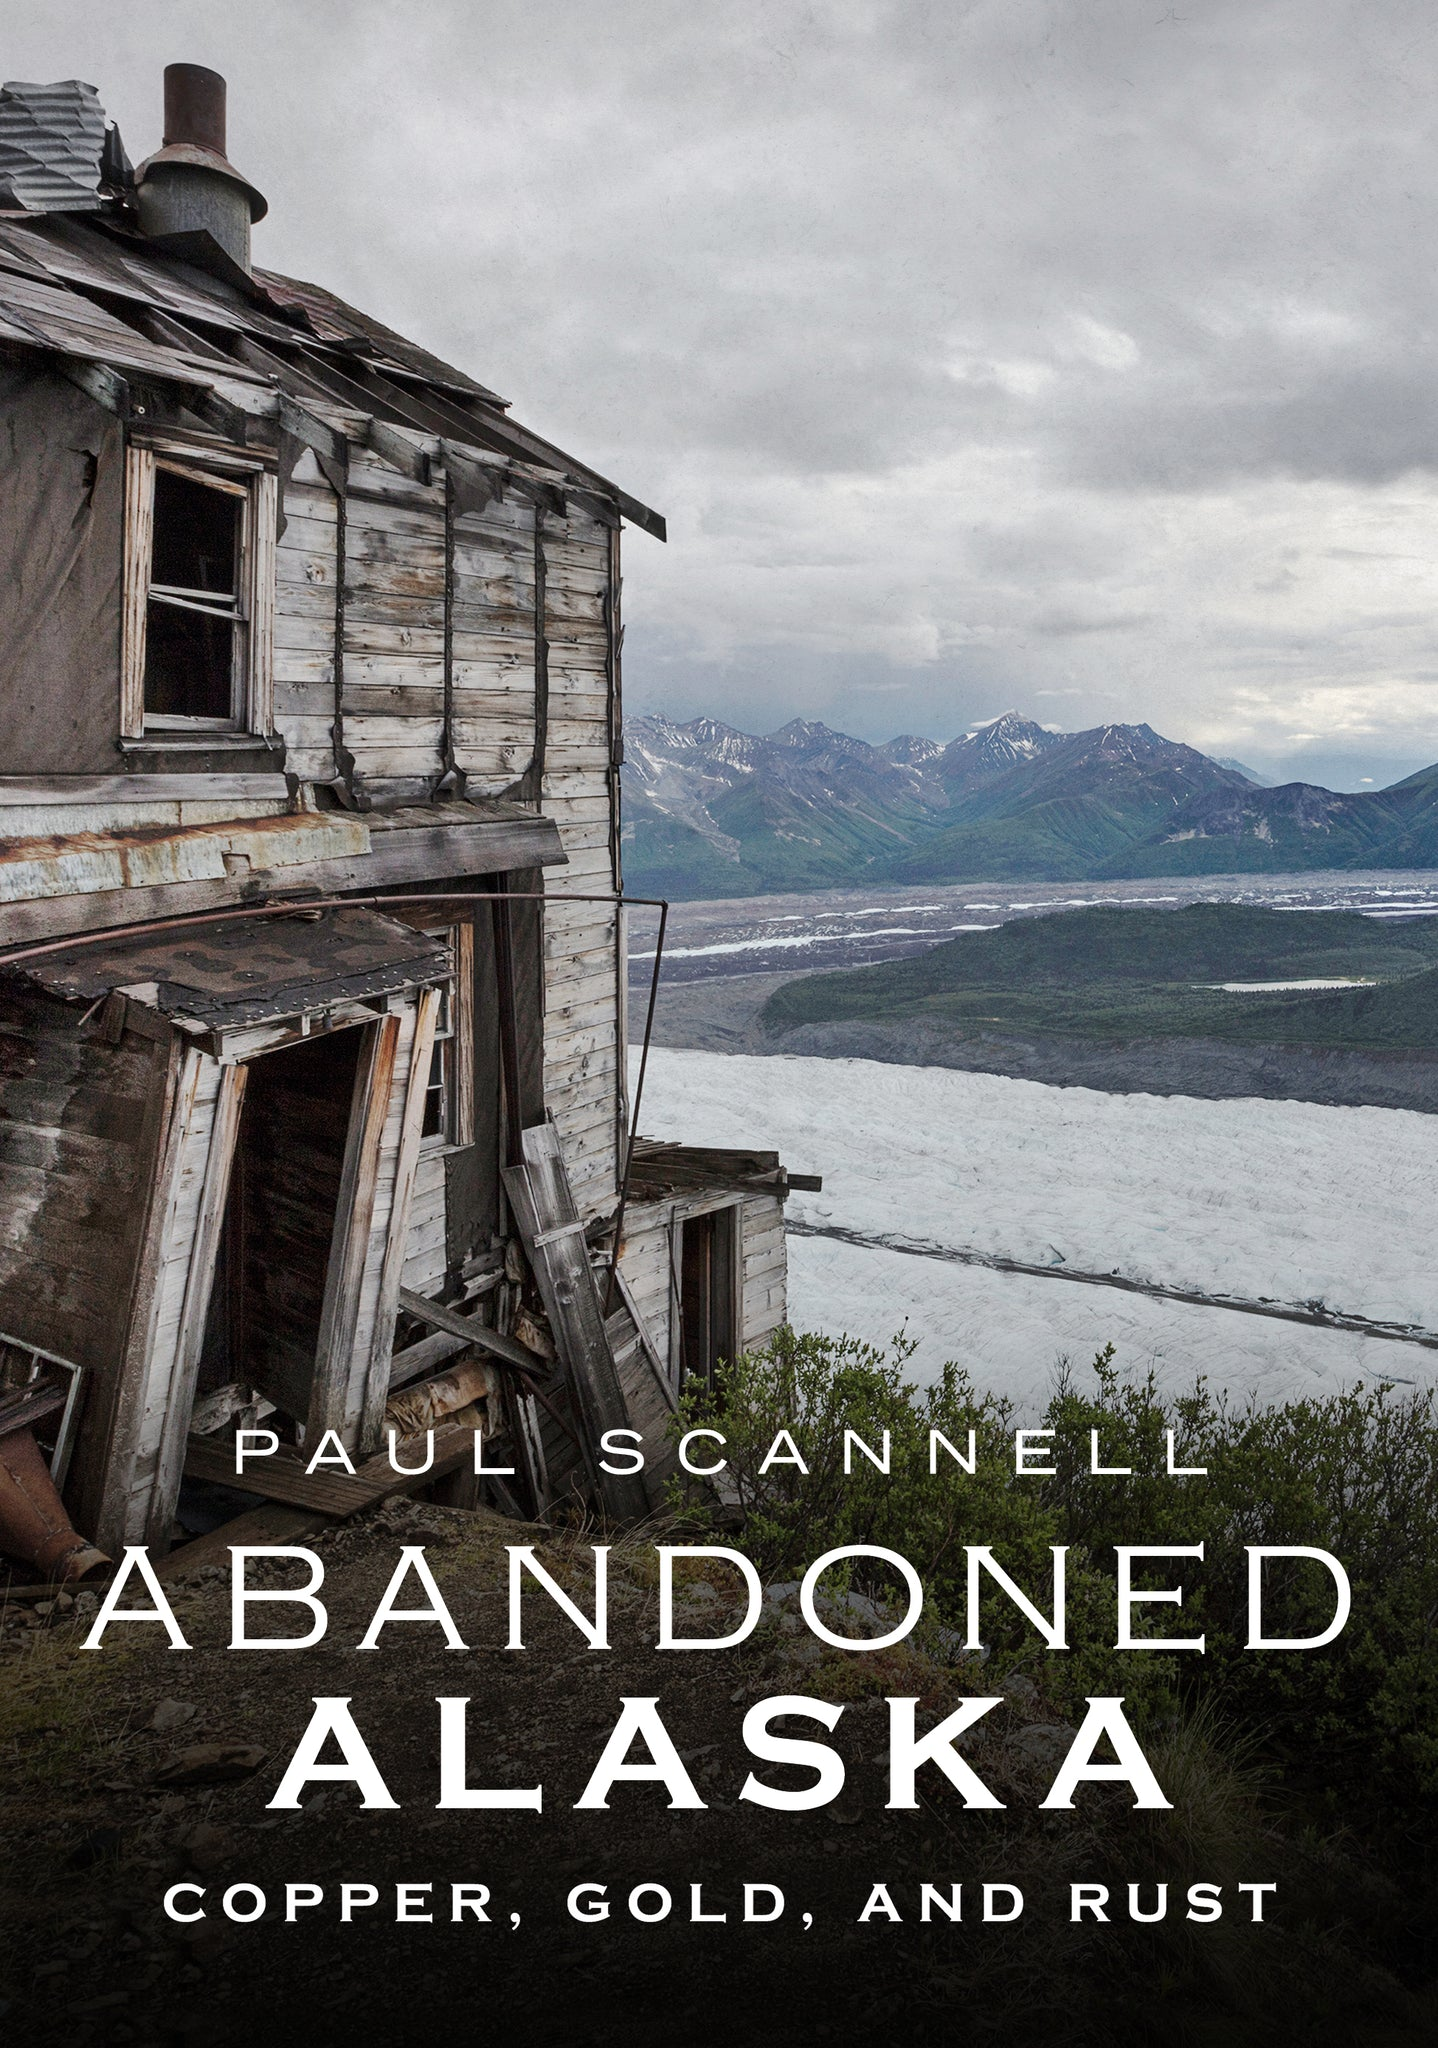 Abandoned Alaska: Copper, Gold, and Rust